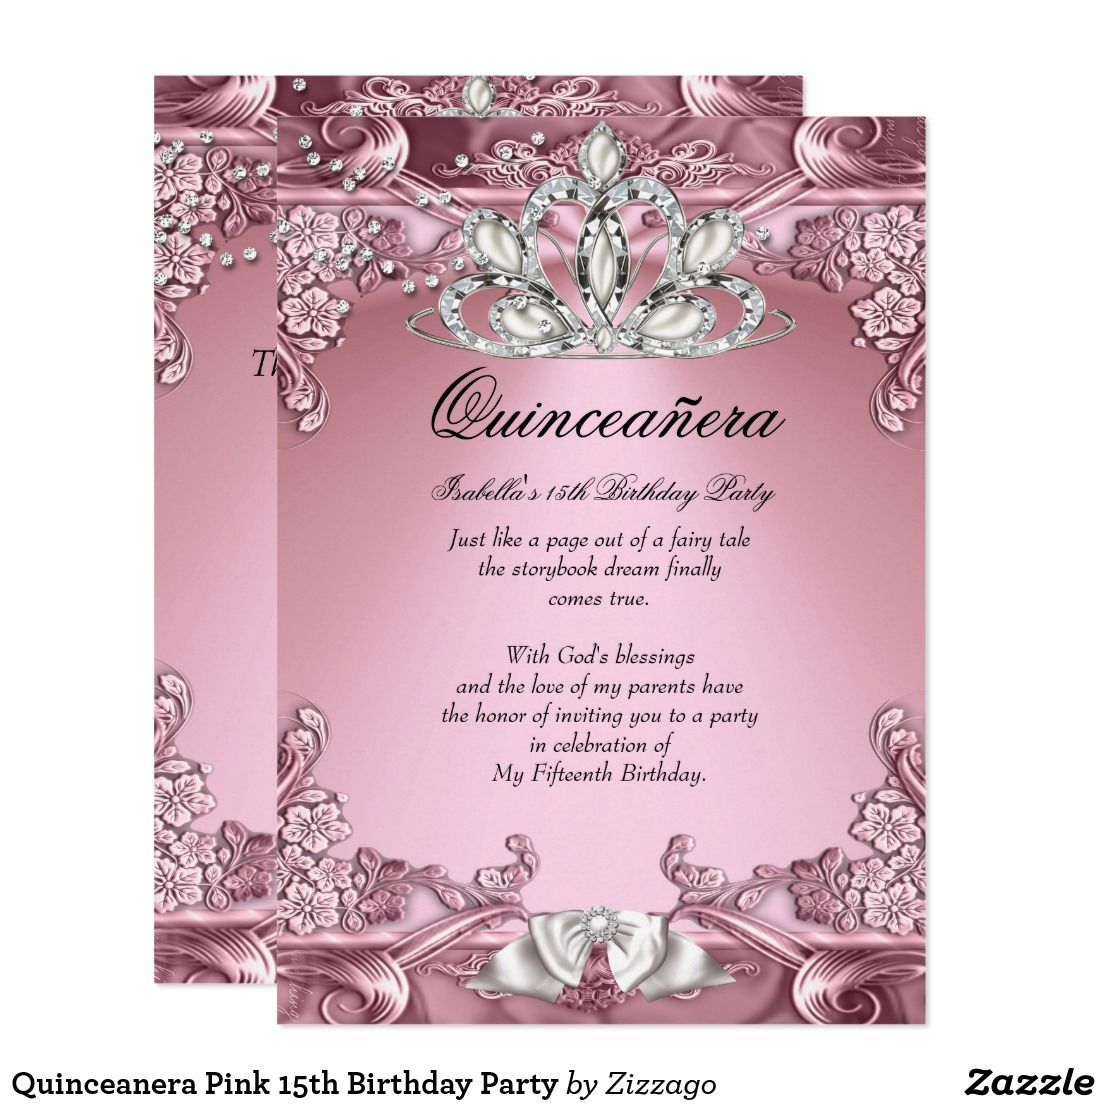 Quinceanera Pink 15th Birthday Party Card Invitations Pinterest